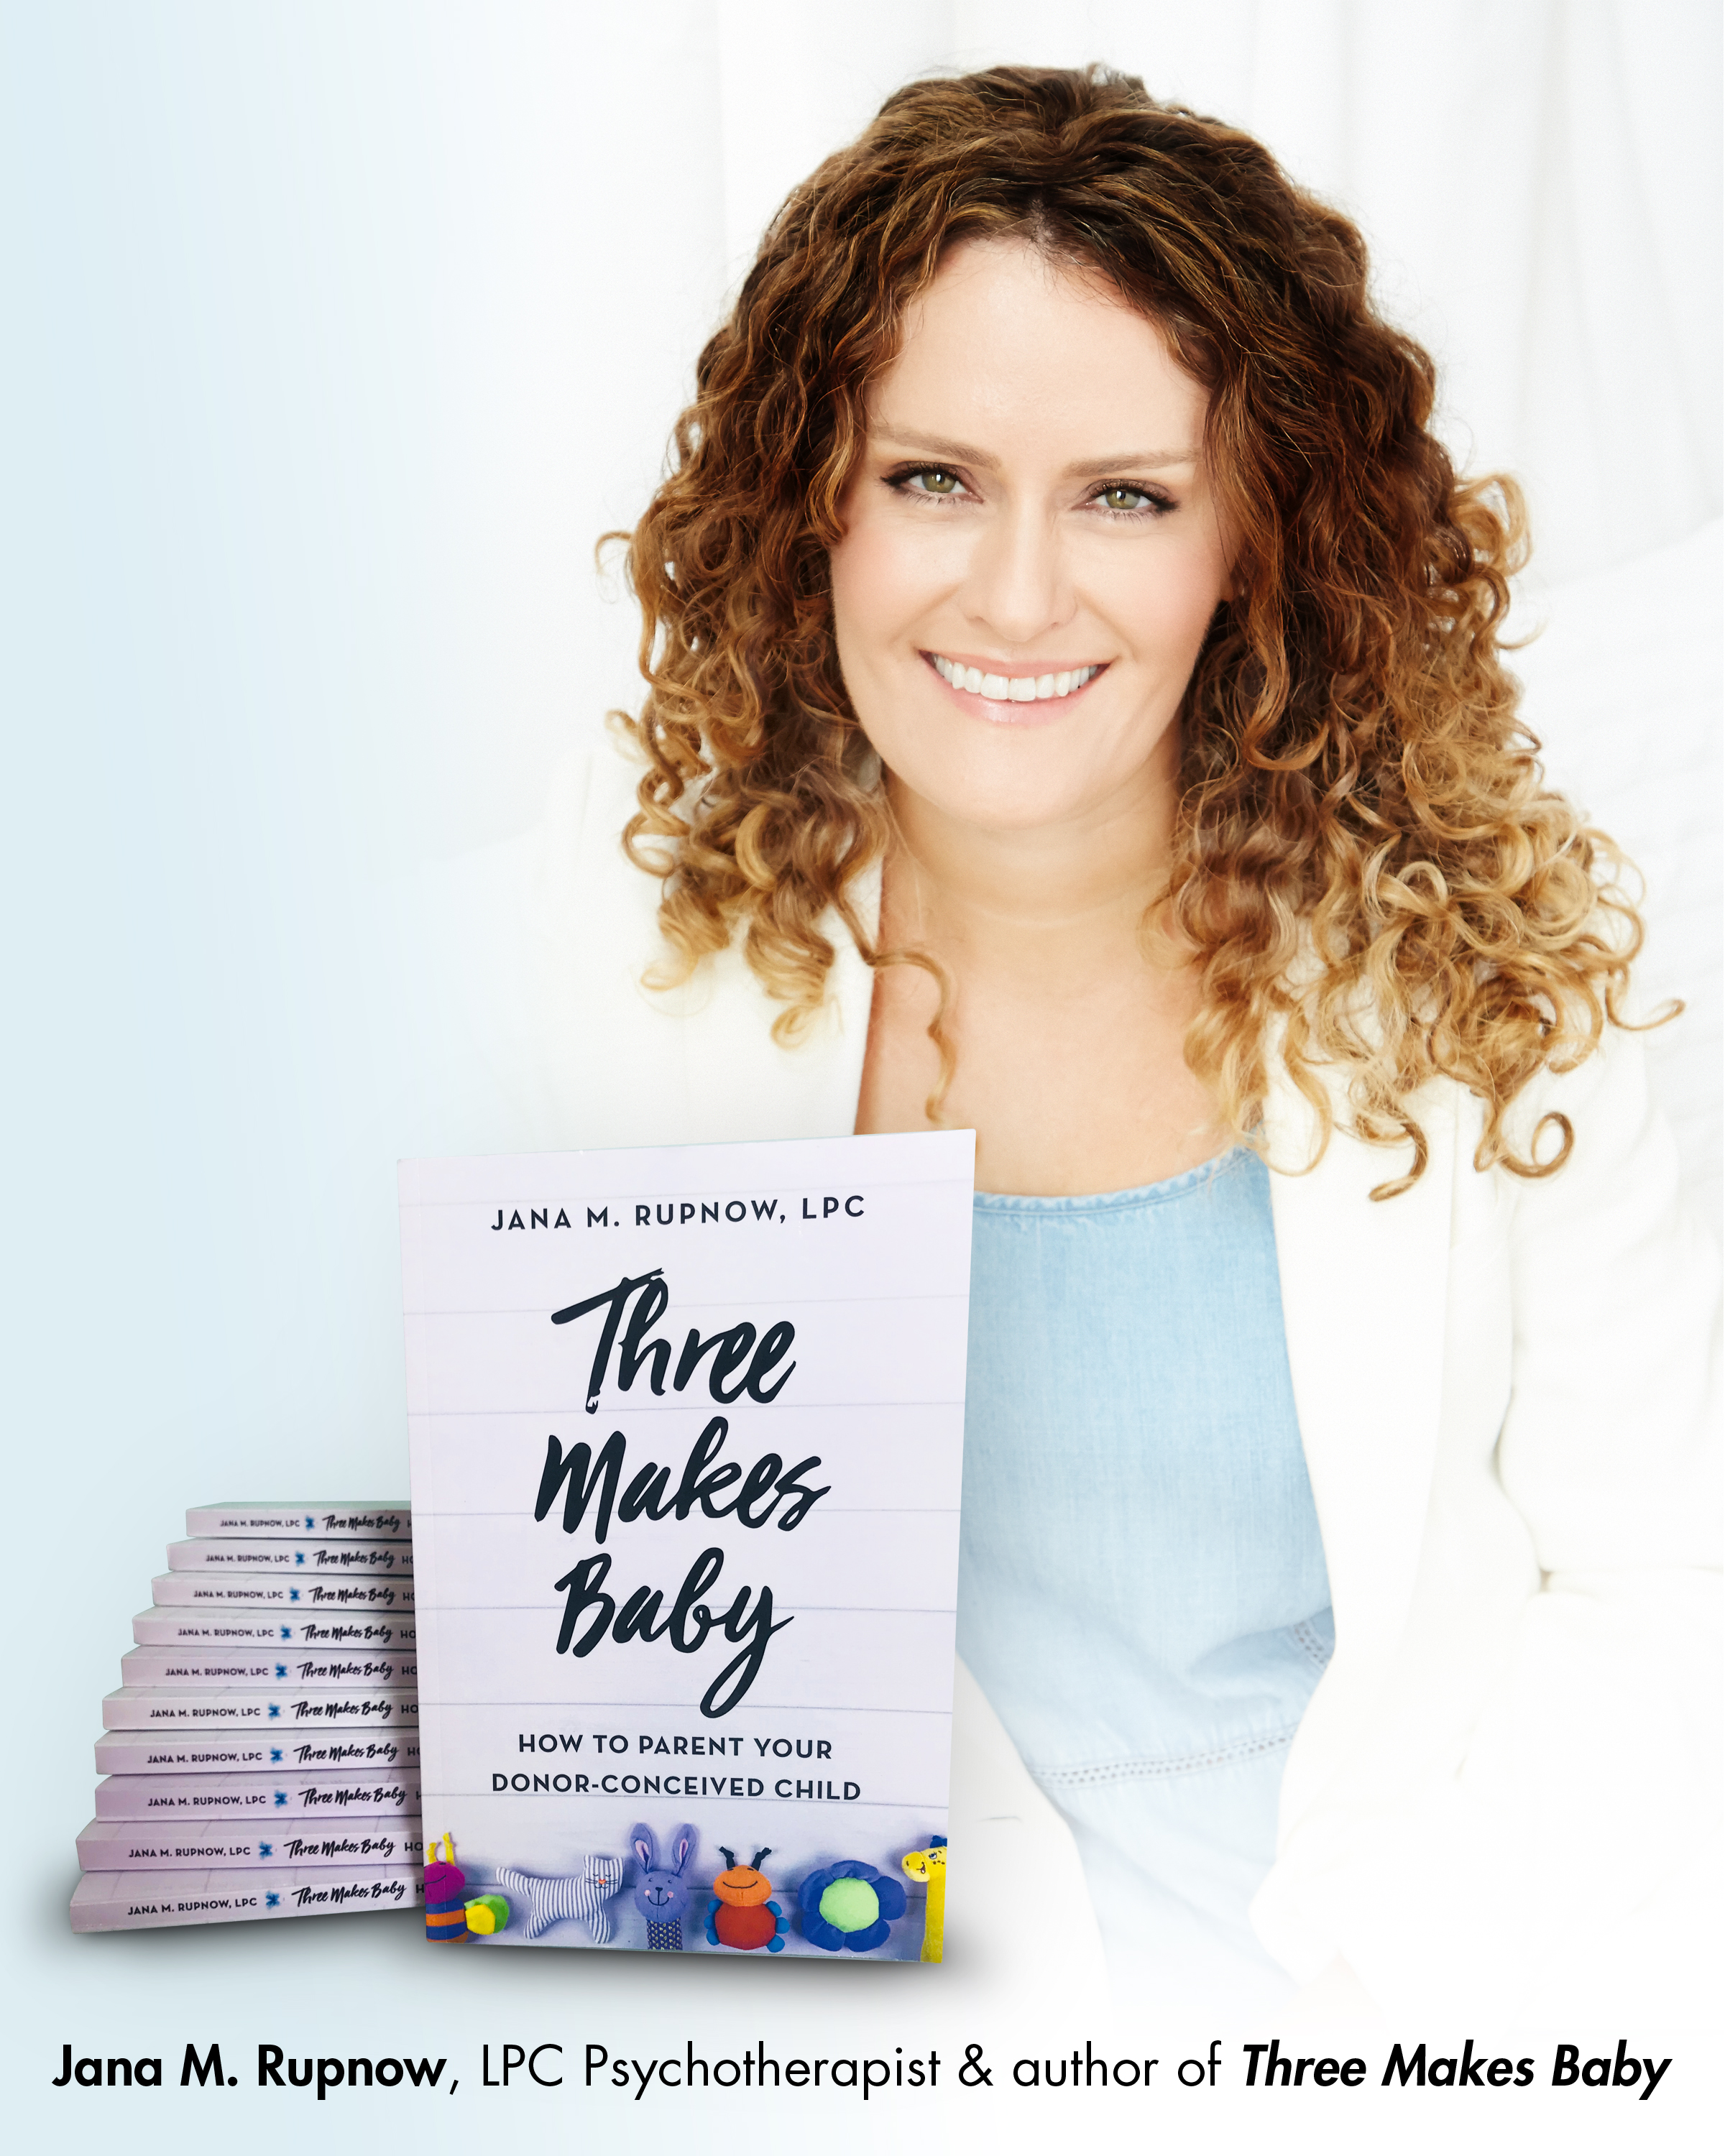 Jana Rupnow Author of Three Makes Baby